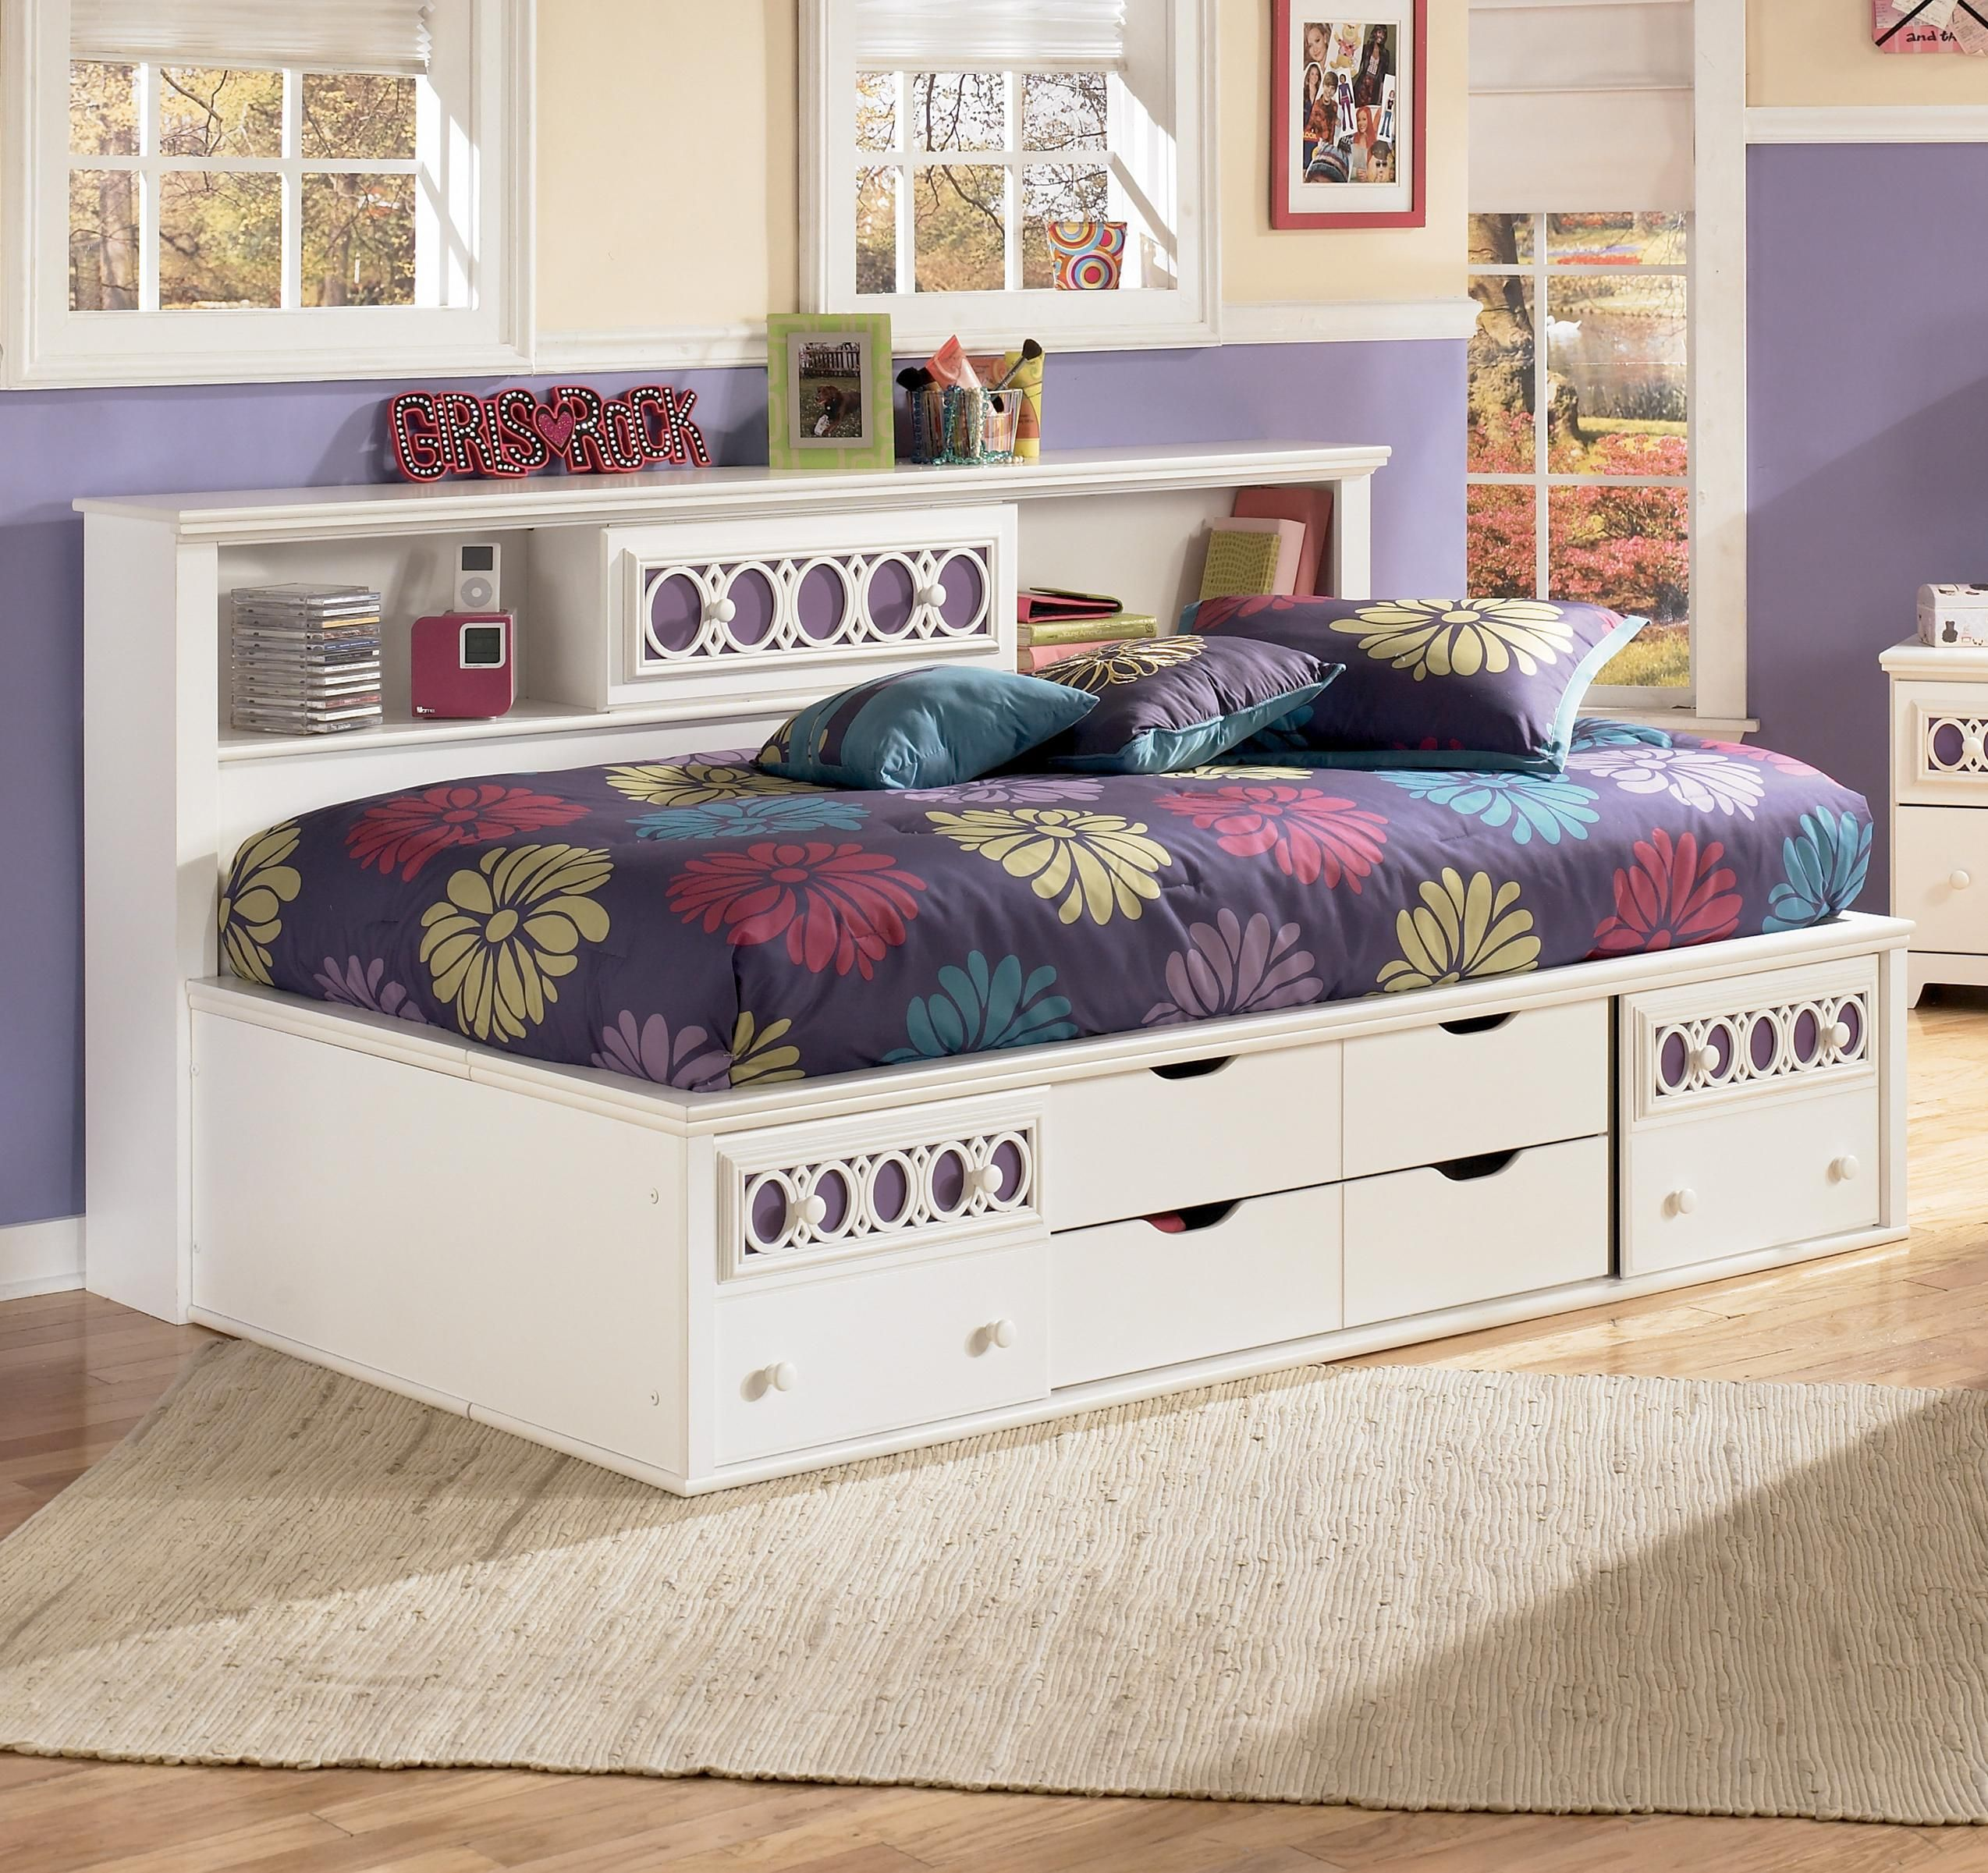 Zayley Twin Bedside Bookcase Daybed With Customizable Color Panels By Signature Design By Ashley At Del Sol Bookcase Bed Daybed With Storage Kids Bedroom Sets